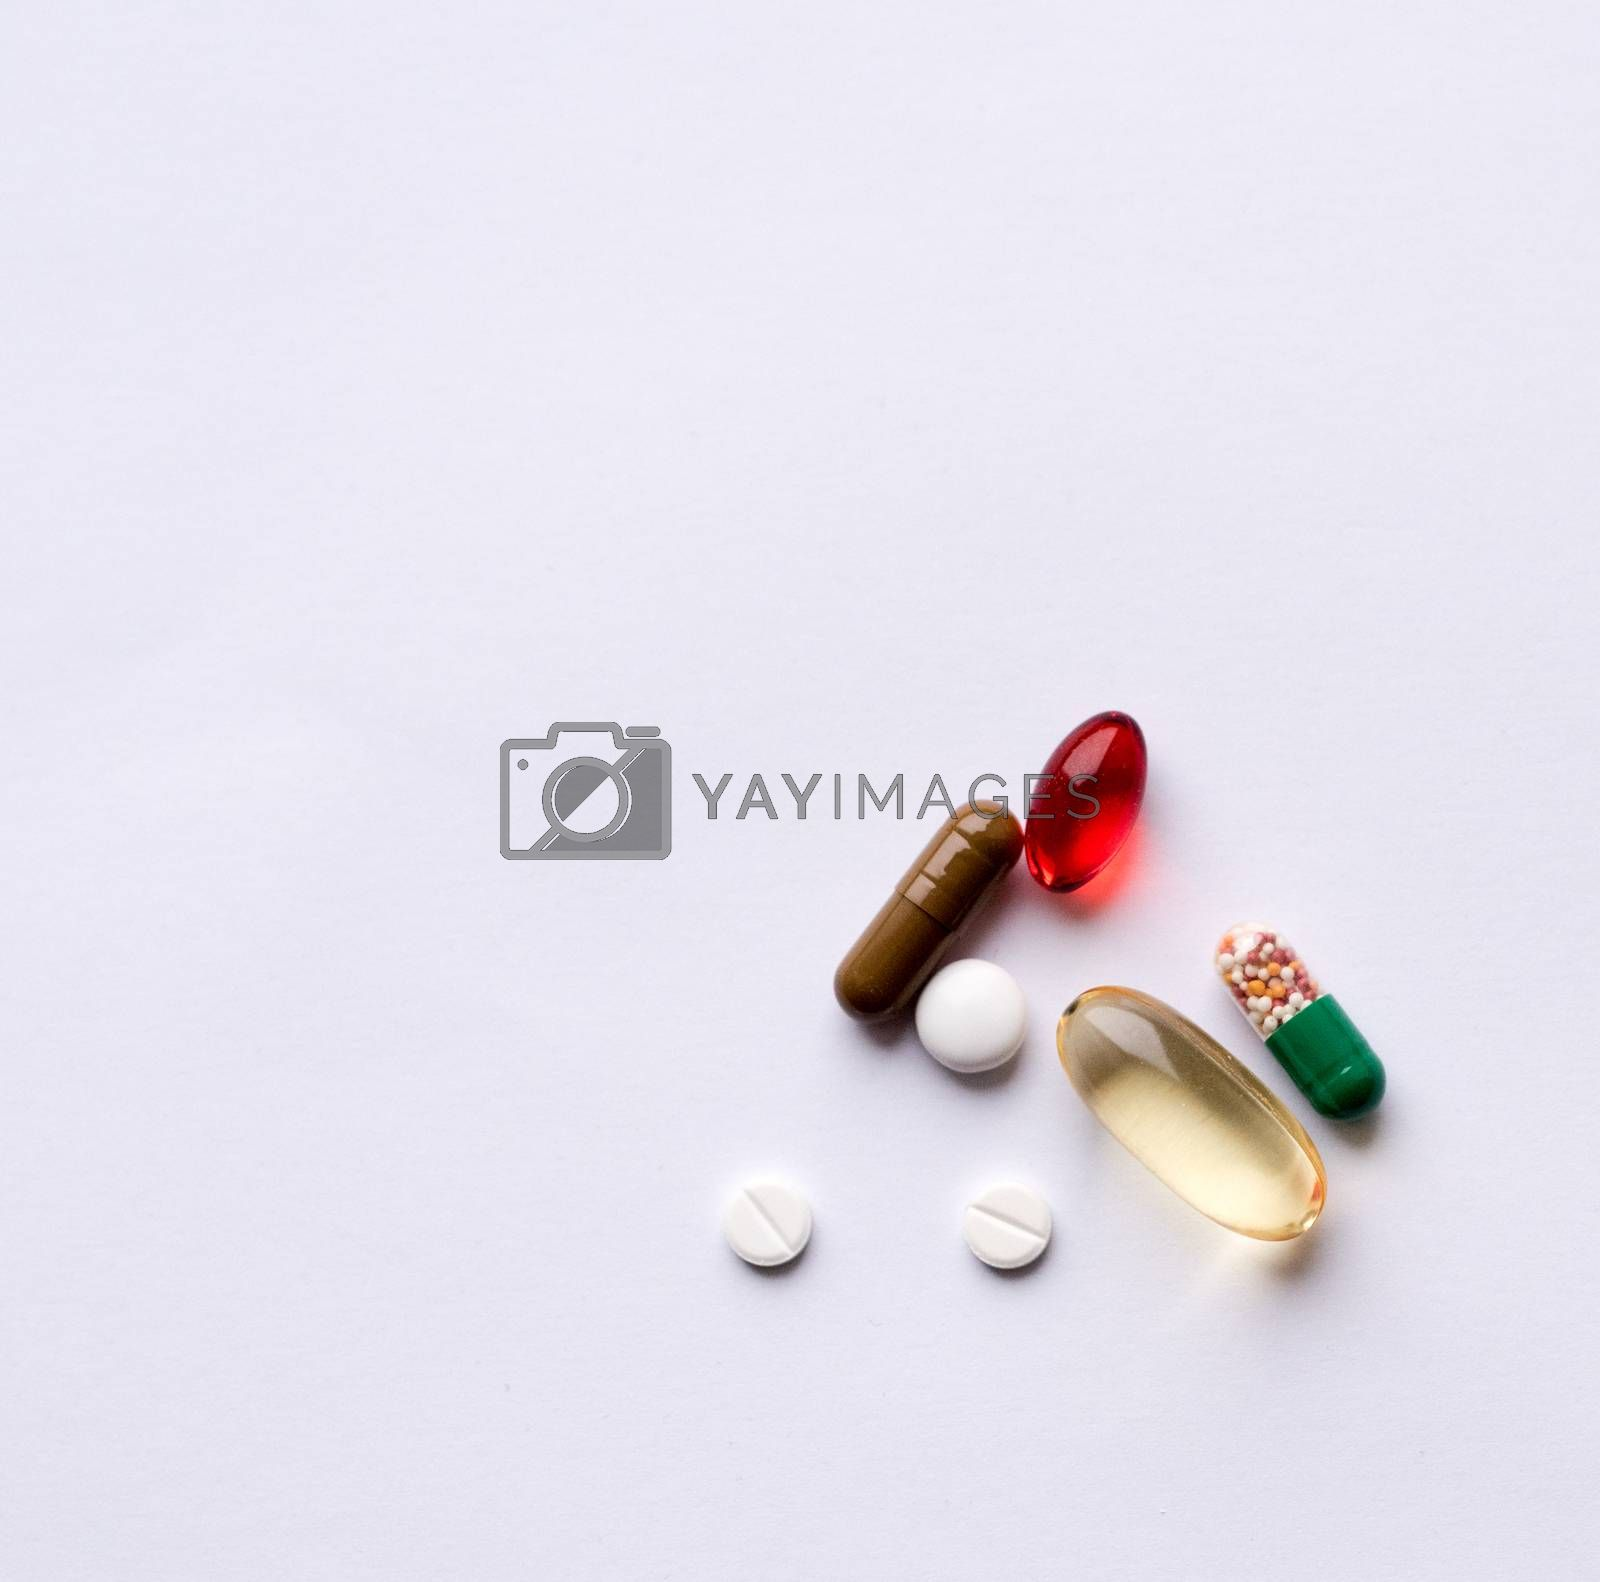 Tabs Vitamins, omega 3, Medications tablets and capsules in a beaker. Medications tablets, suppository bottles, capsules and thermometer on wooden table